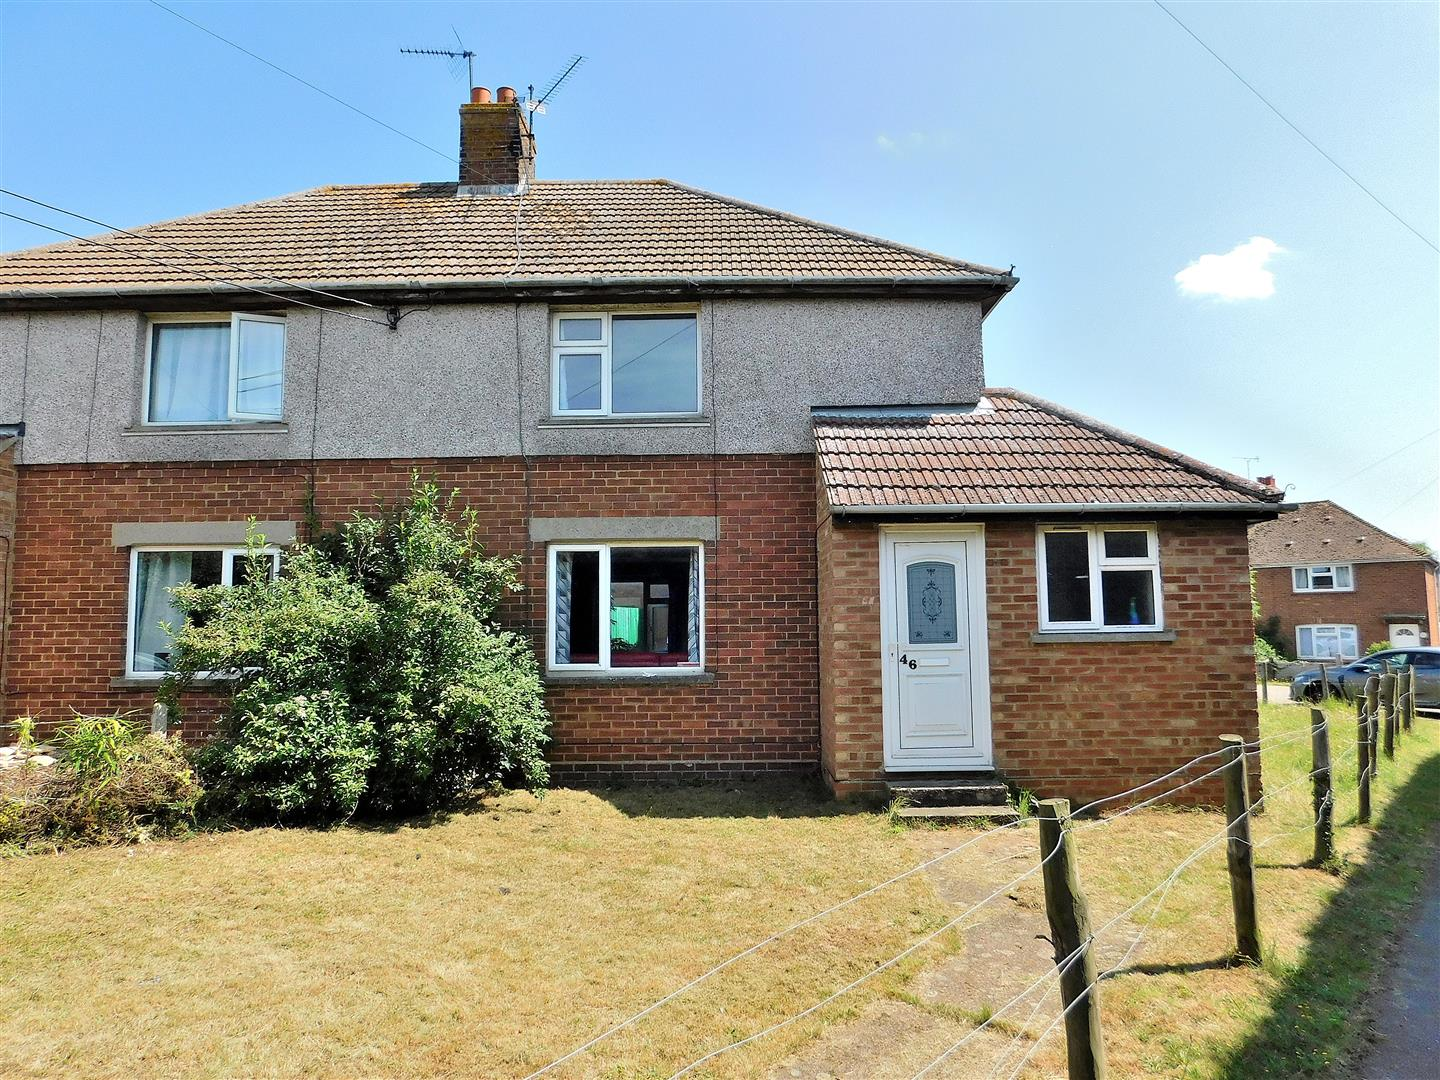 3 bed semi-detached house for sale in King's Lynn, PE31 7BS  - Property Image 1